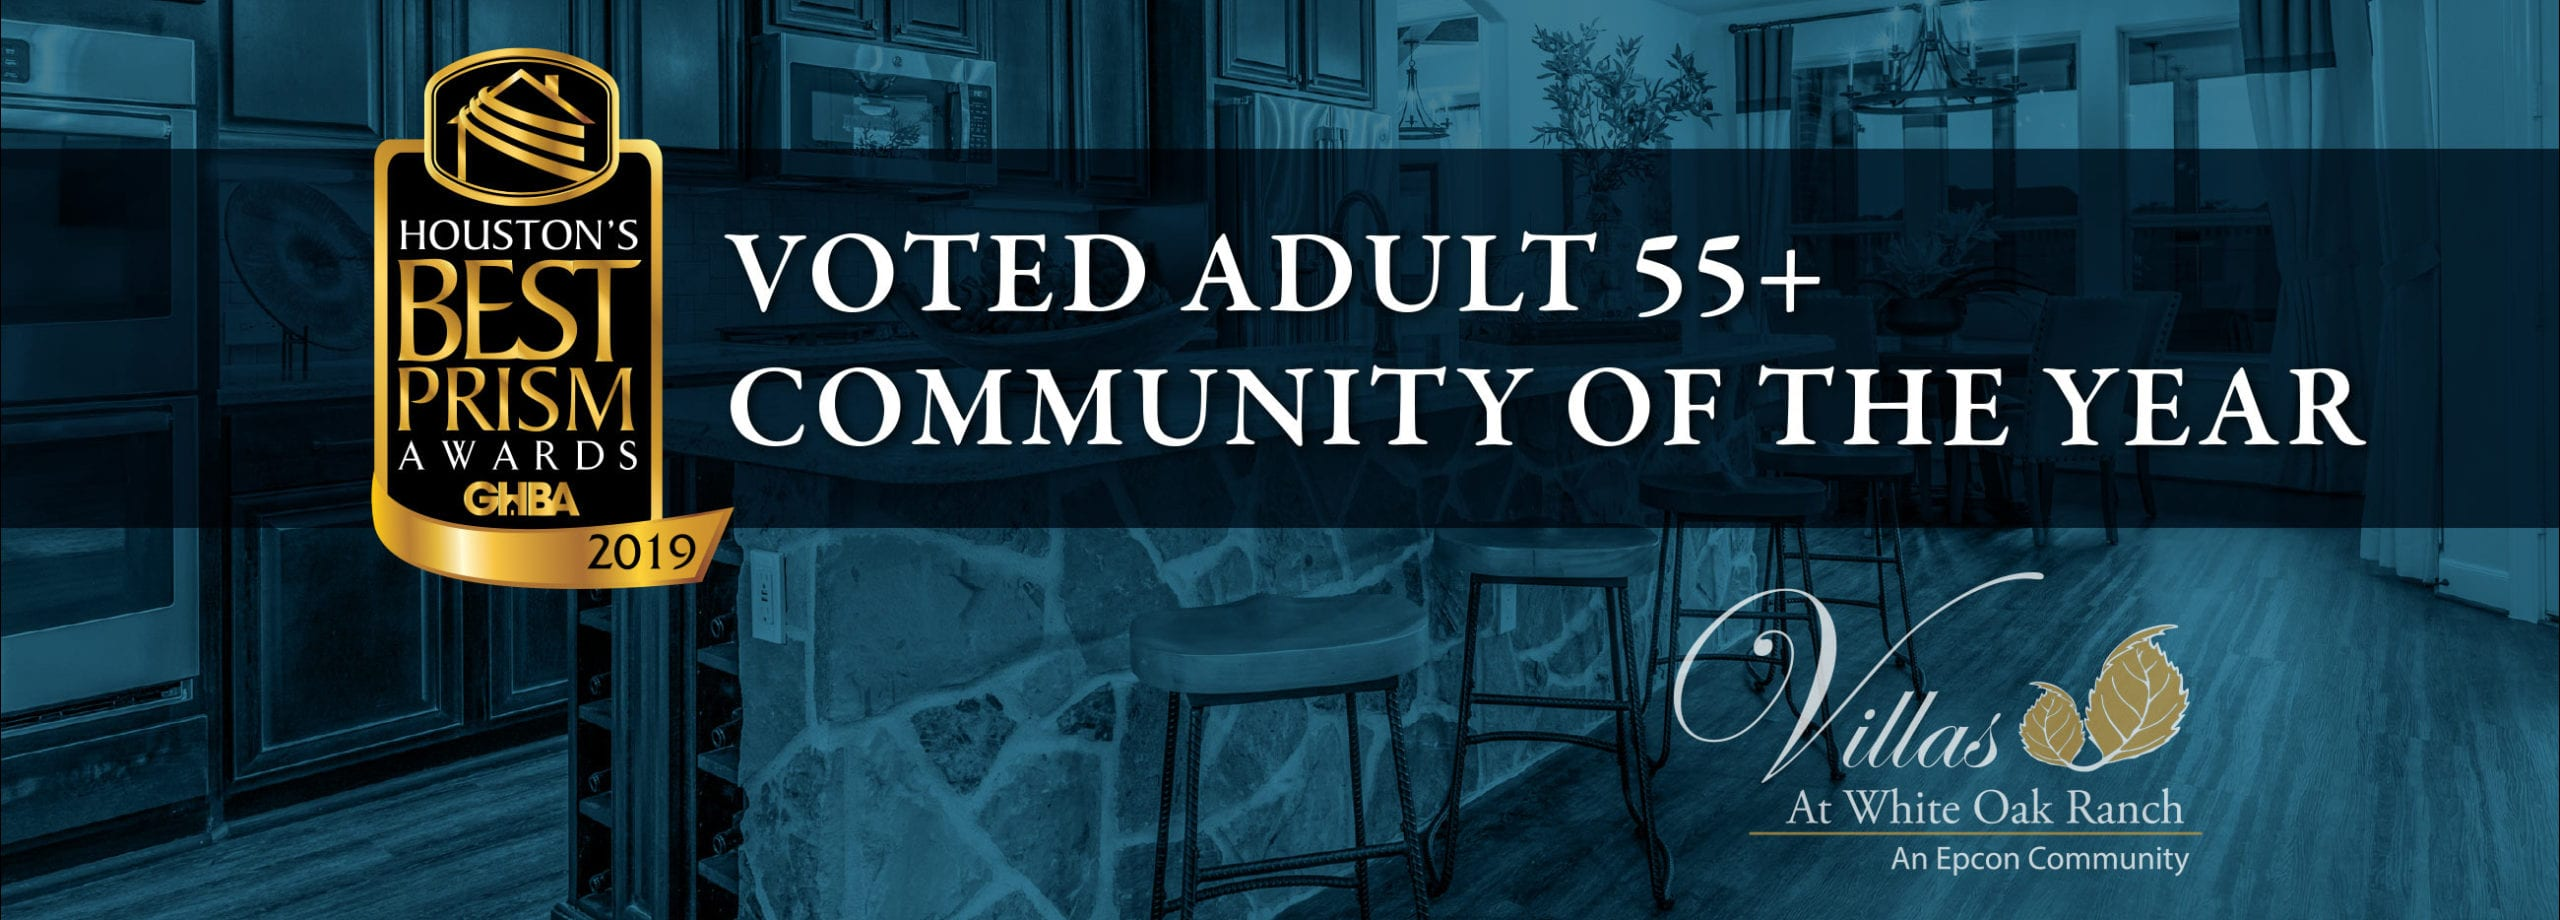 Villas at White Oak Voted Adult 55+ Community of the Year